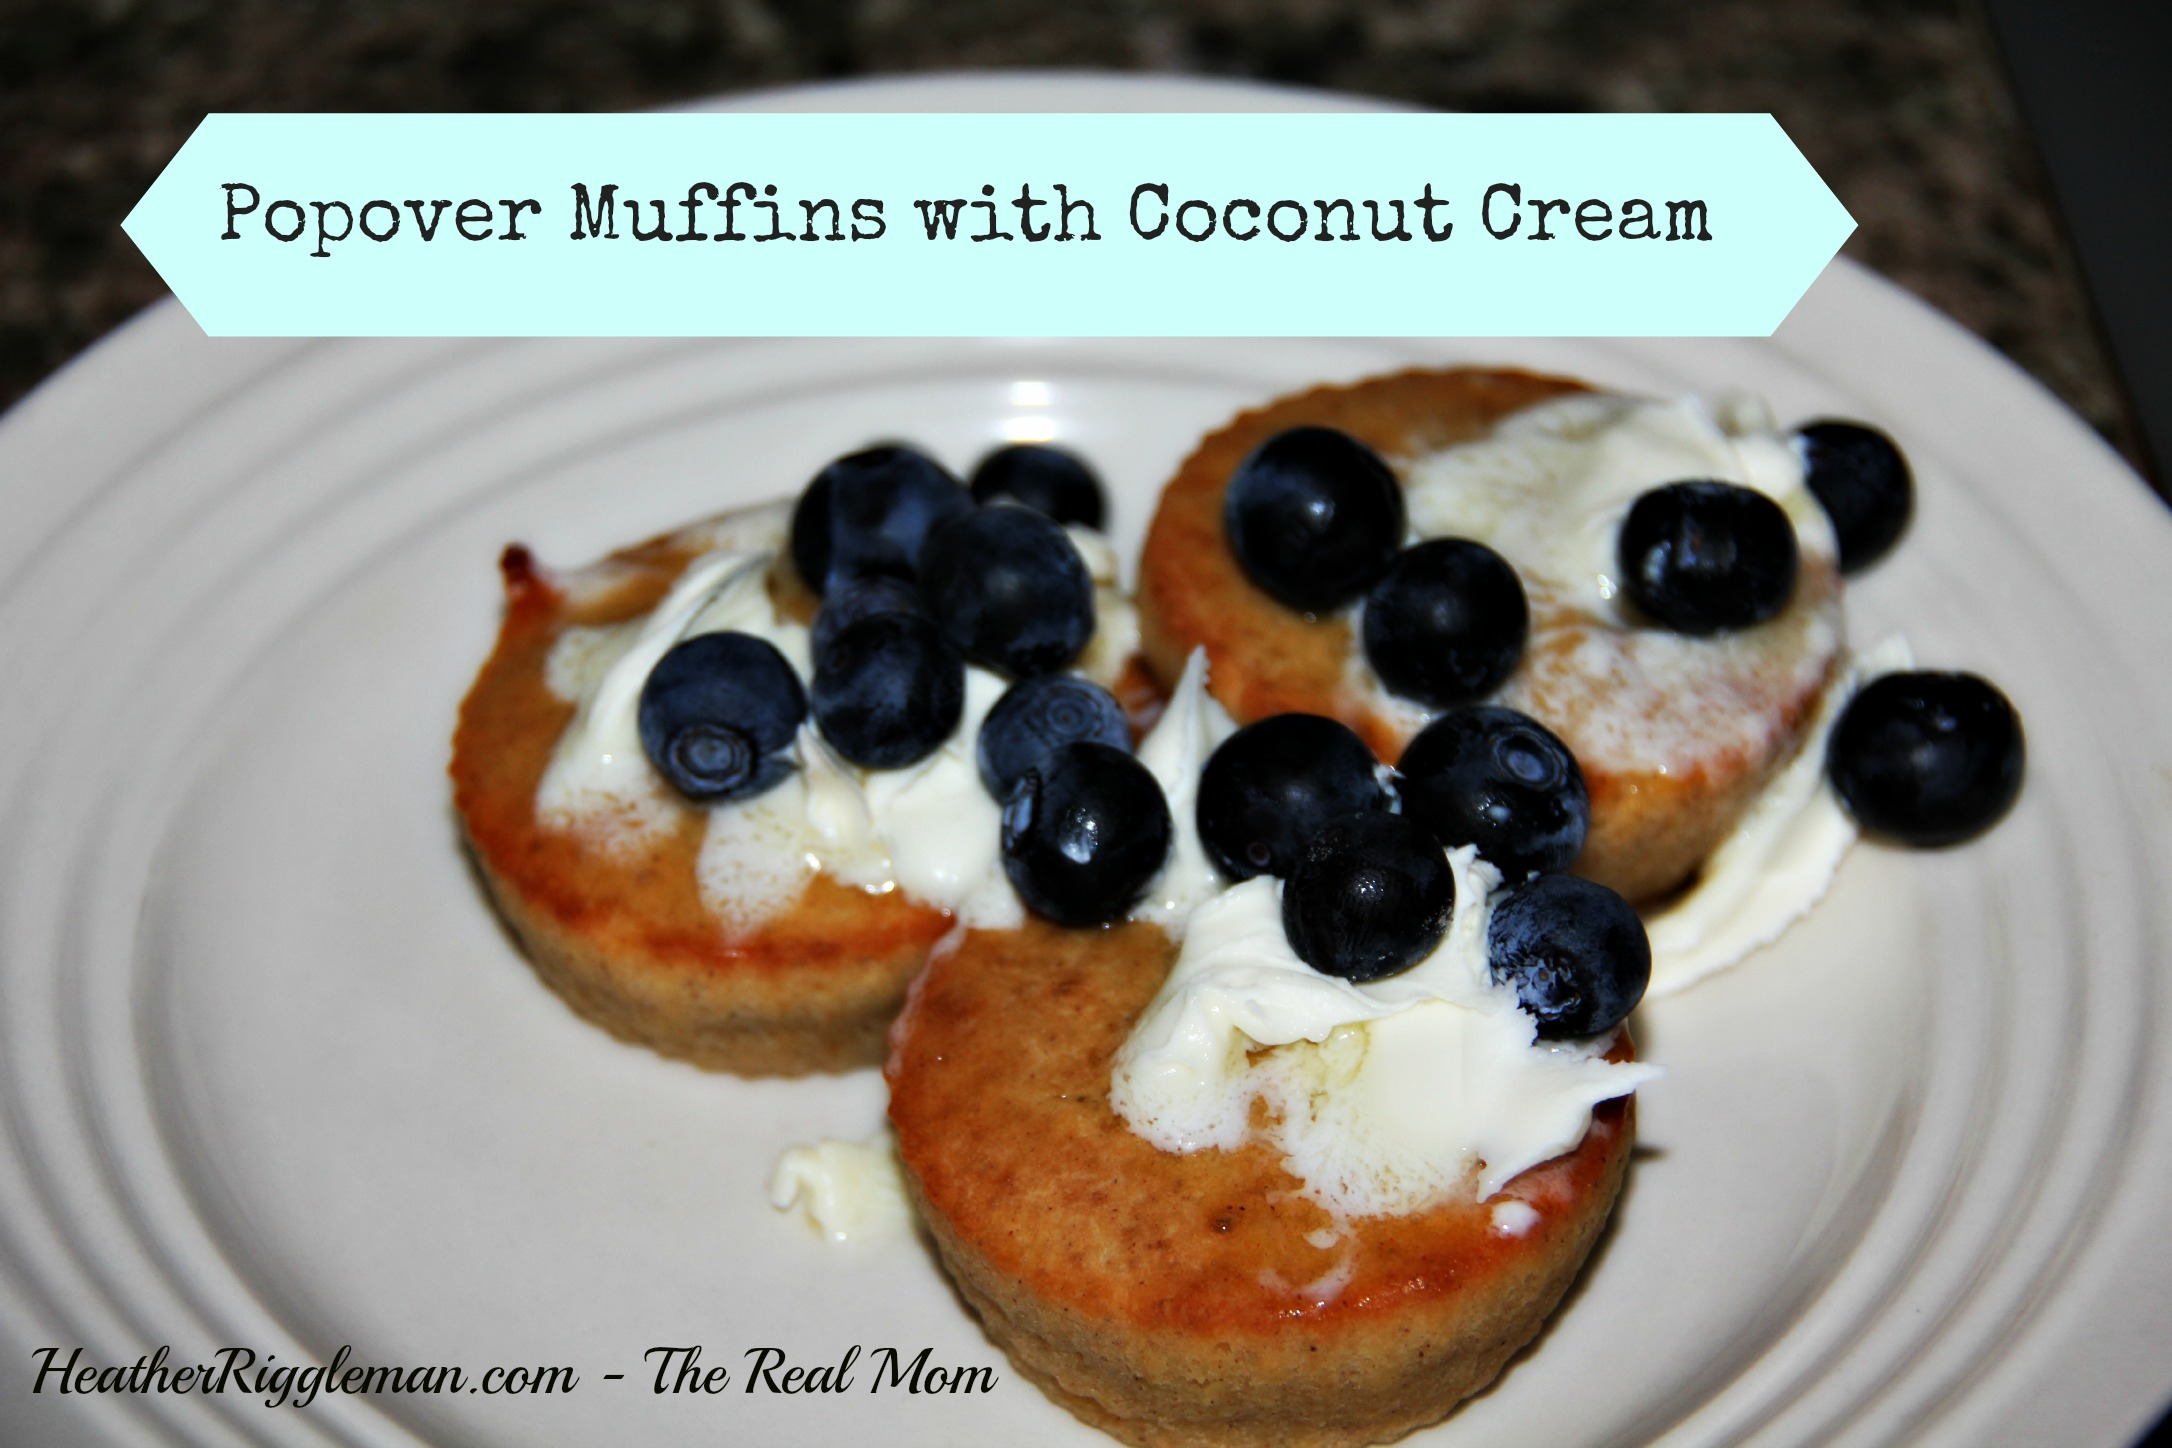 Popover Muffins with Coconut Cream Topping